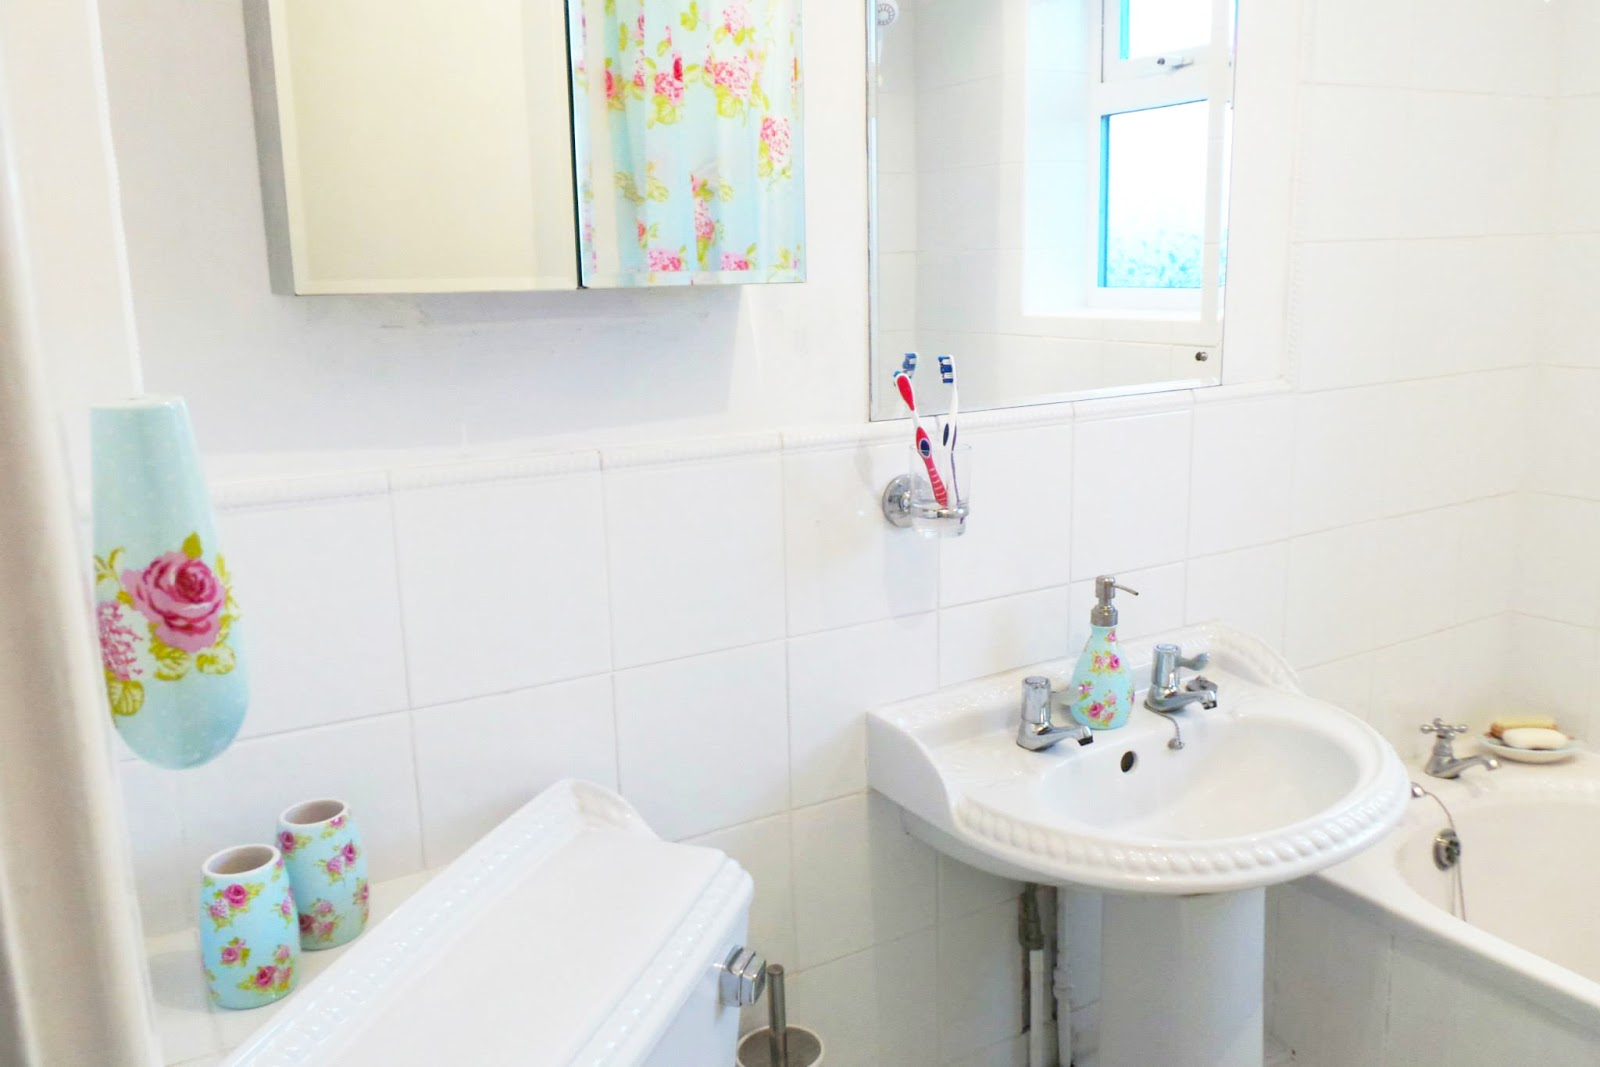 Dunelm Bathroom Accessories Lauras All Made Up Uk Beauty Fashion Lifestyle Blog